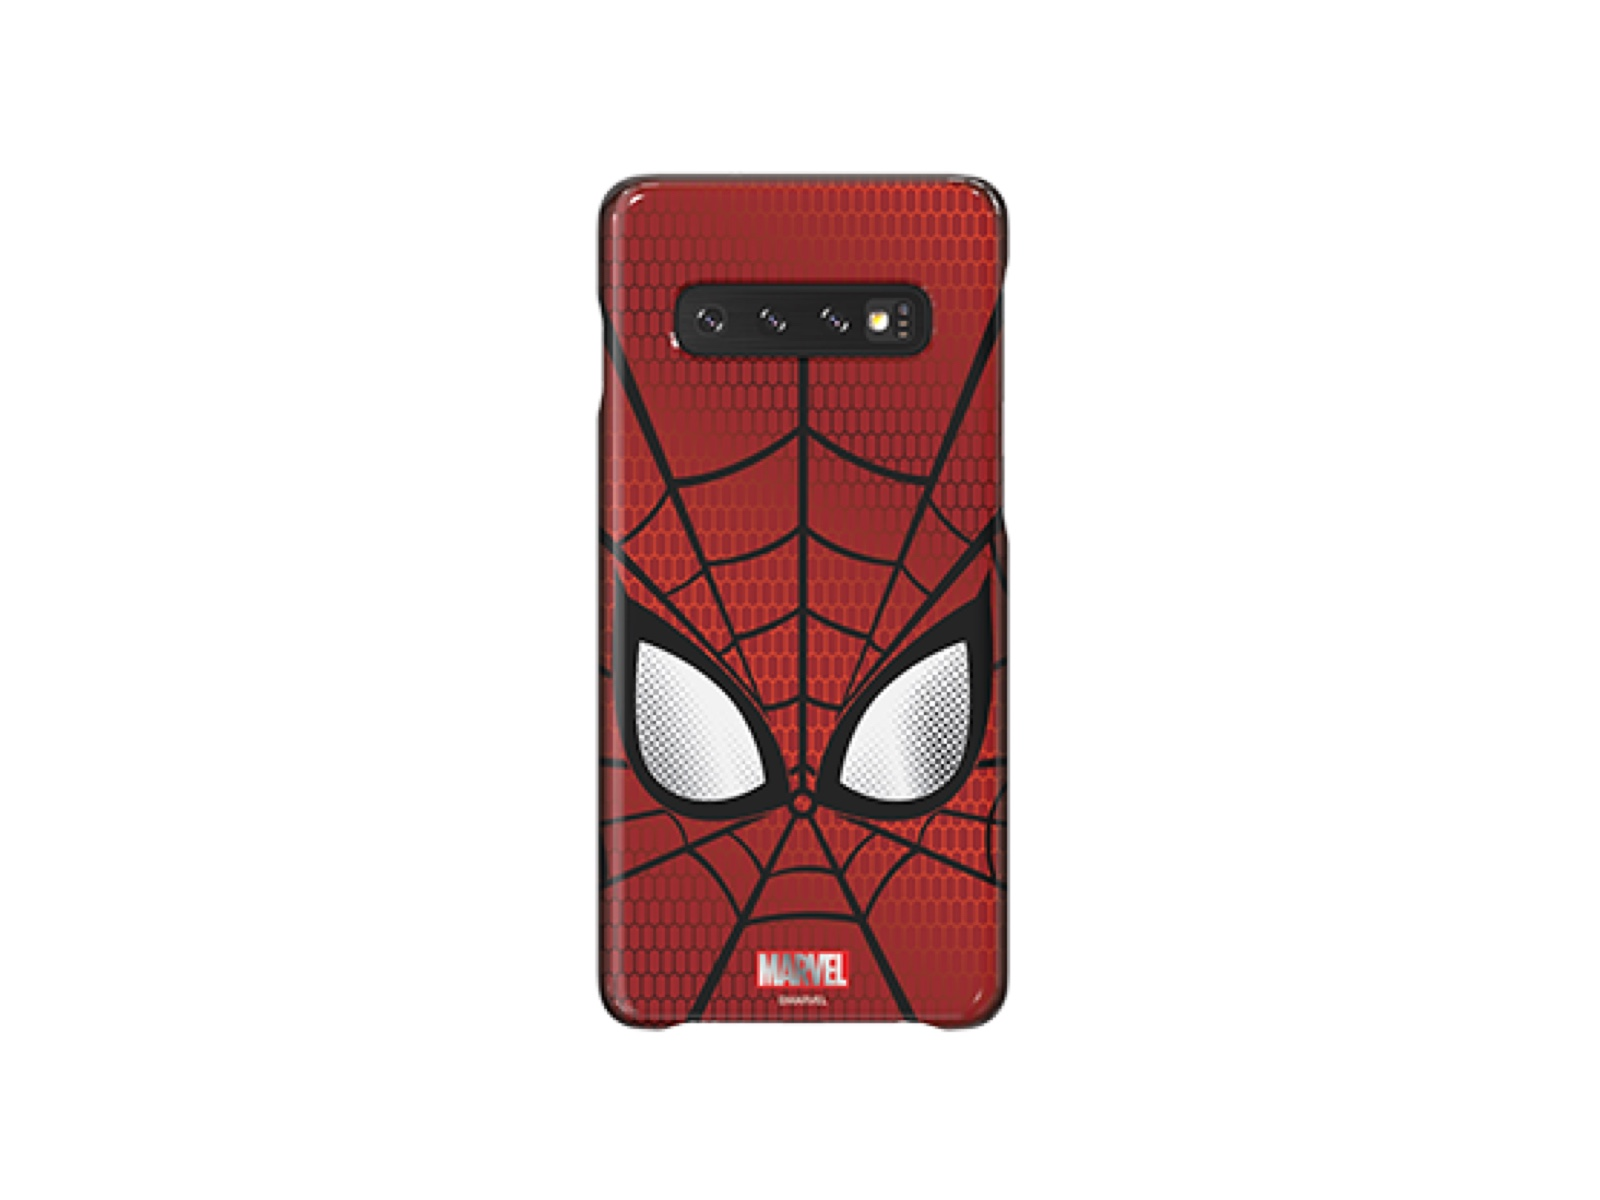 Galaxy Friends Spider Man Smart Cover For Galaxy S10 Mobile Accessories Gp G973hifgkwd Samsung Us